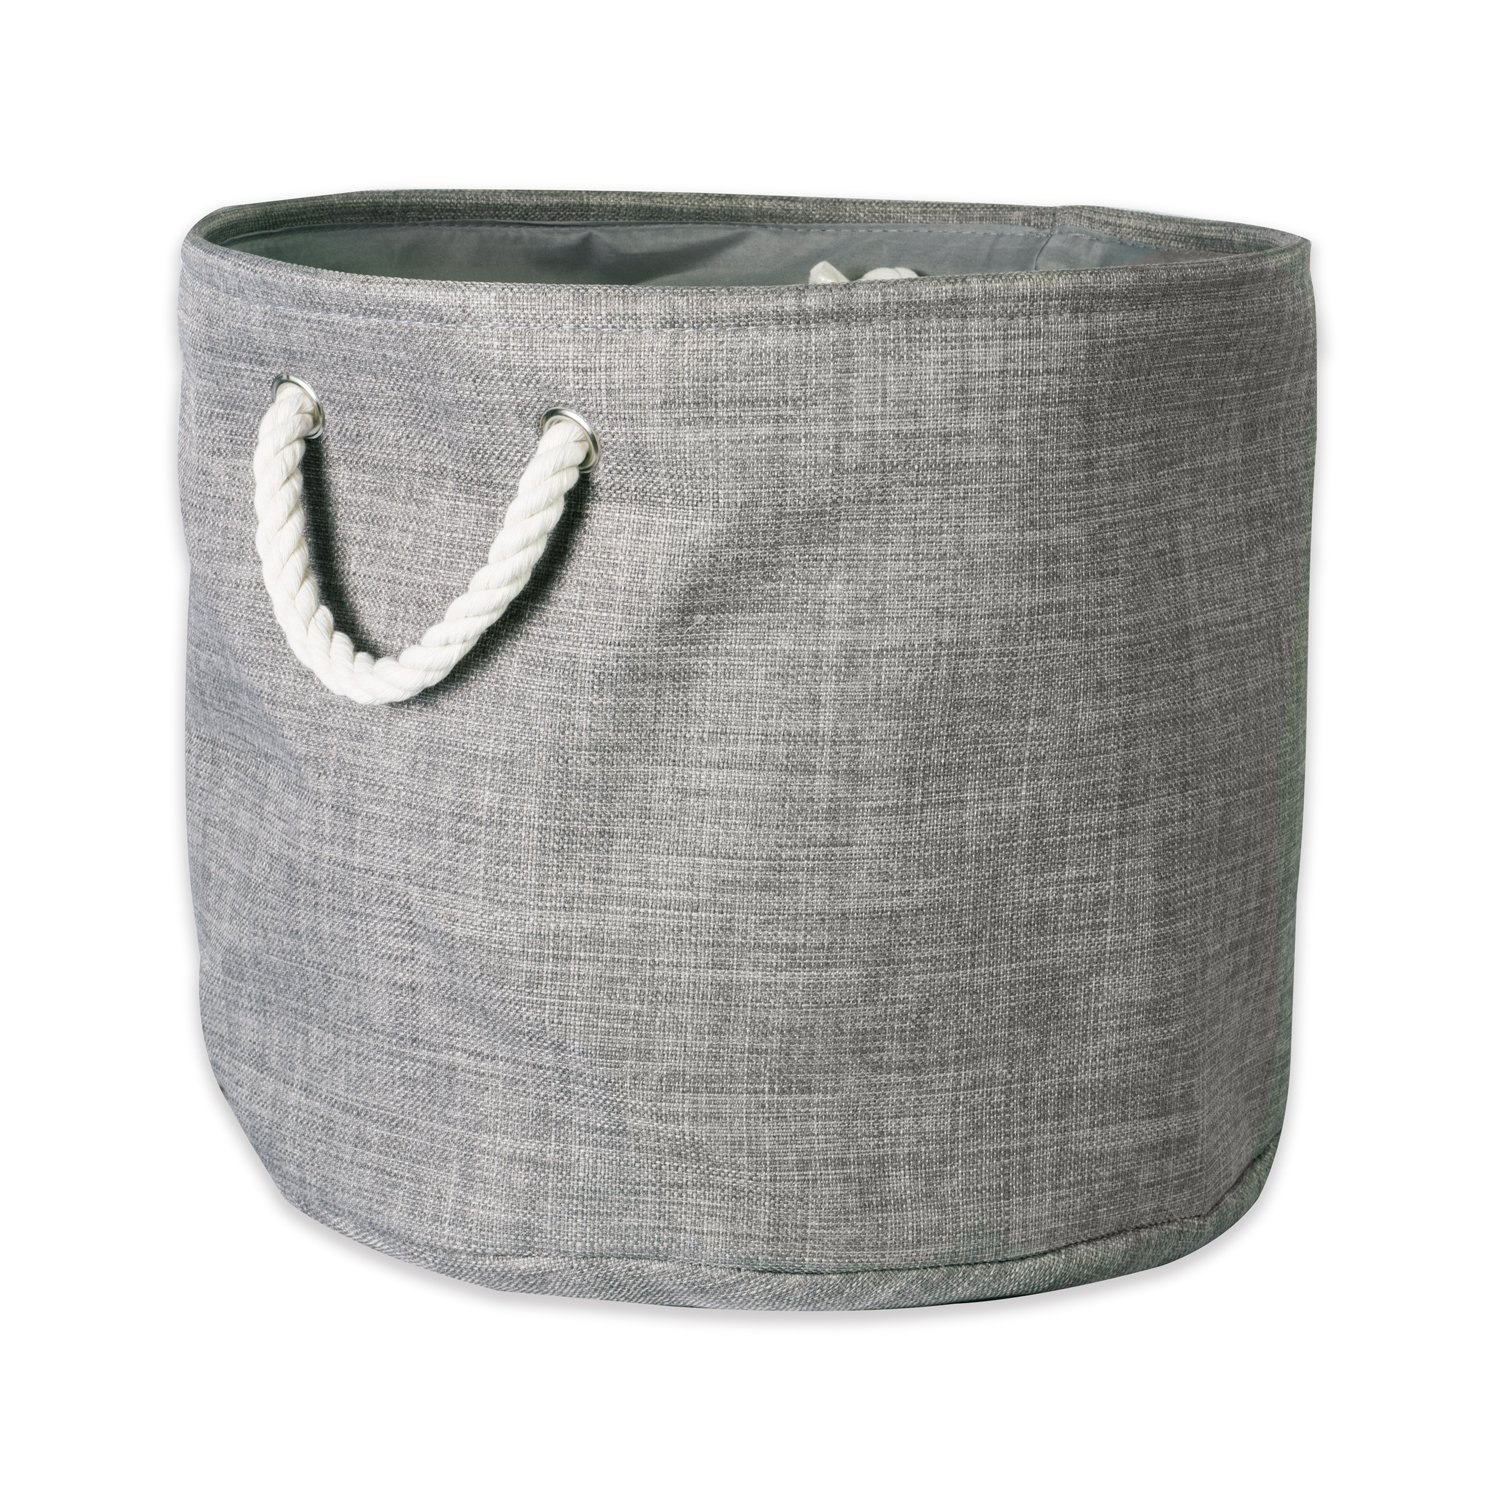 DII, CAMZ37081 Collapsible Variegated Polyester Storage Bin, Large, Gray